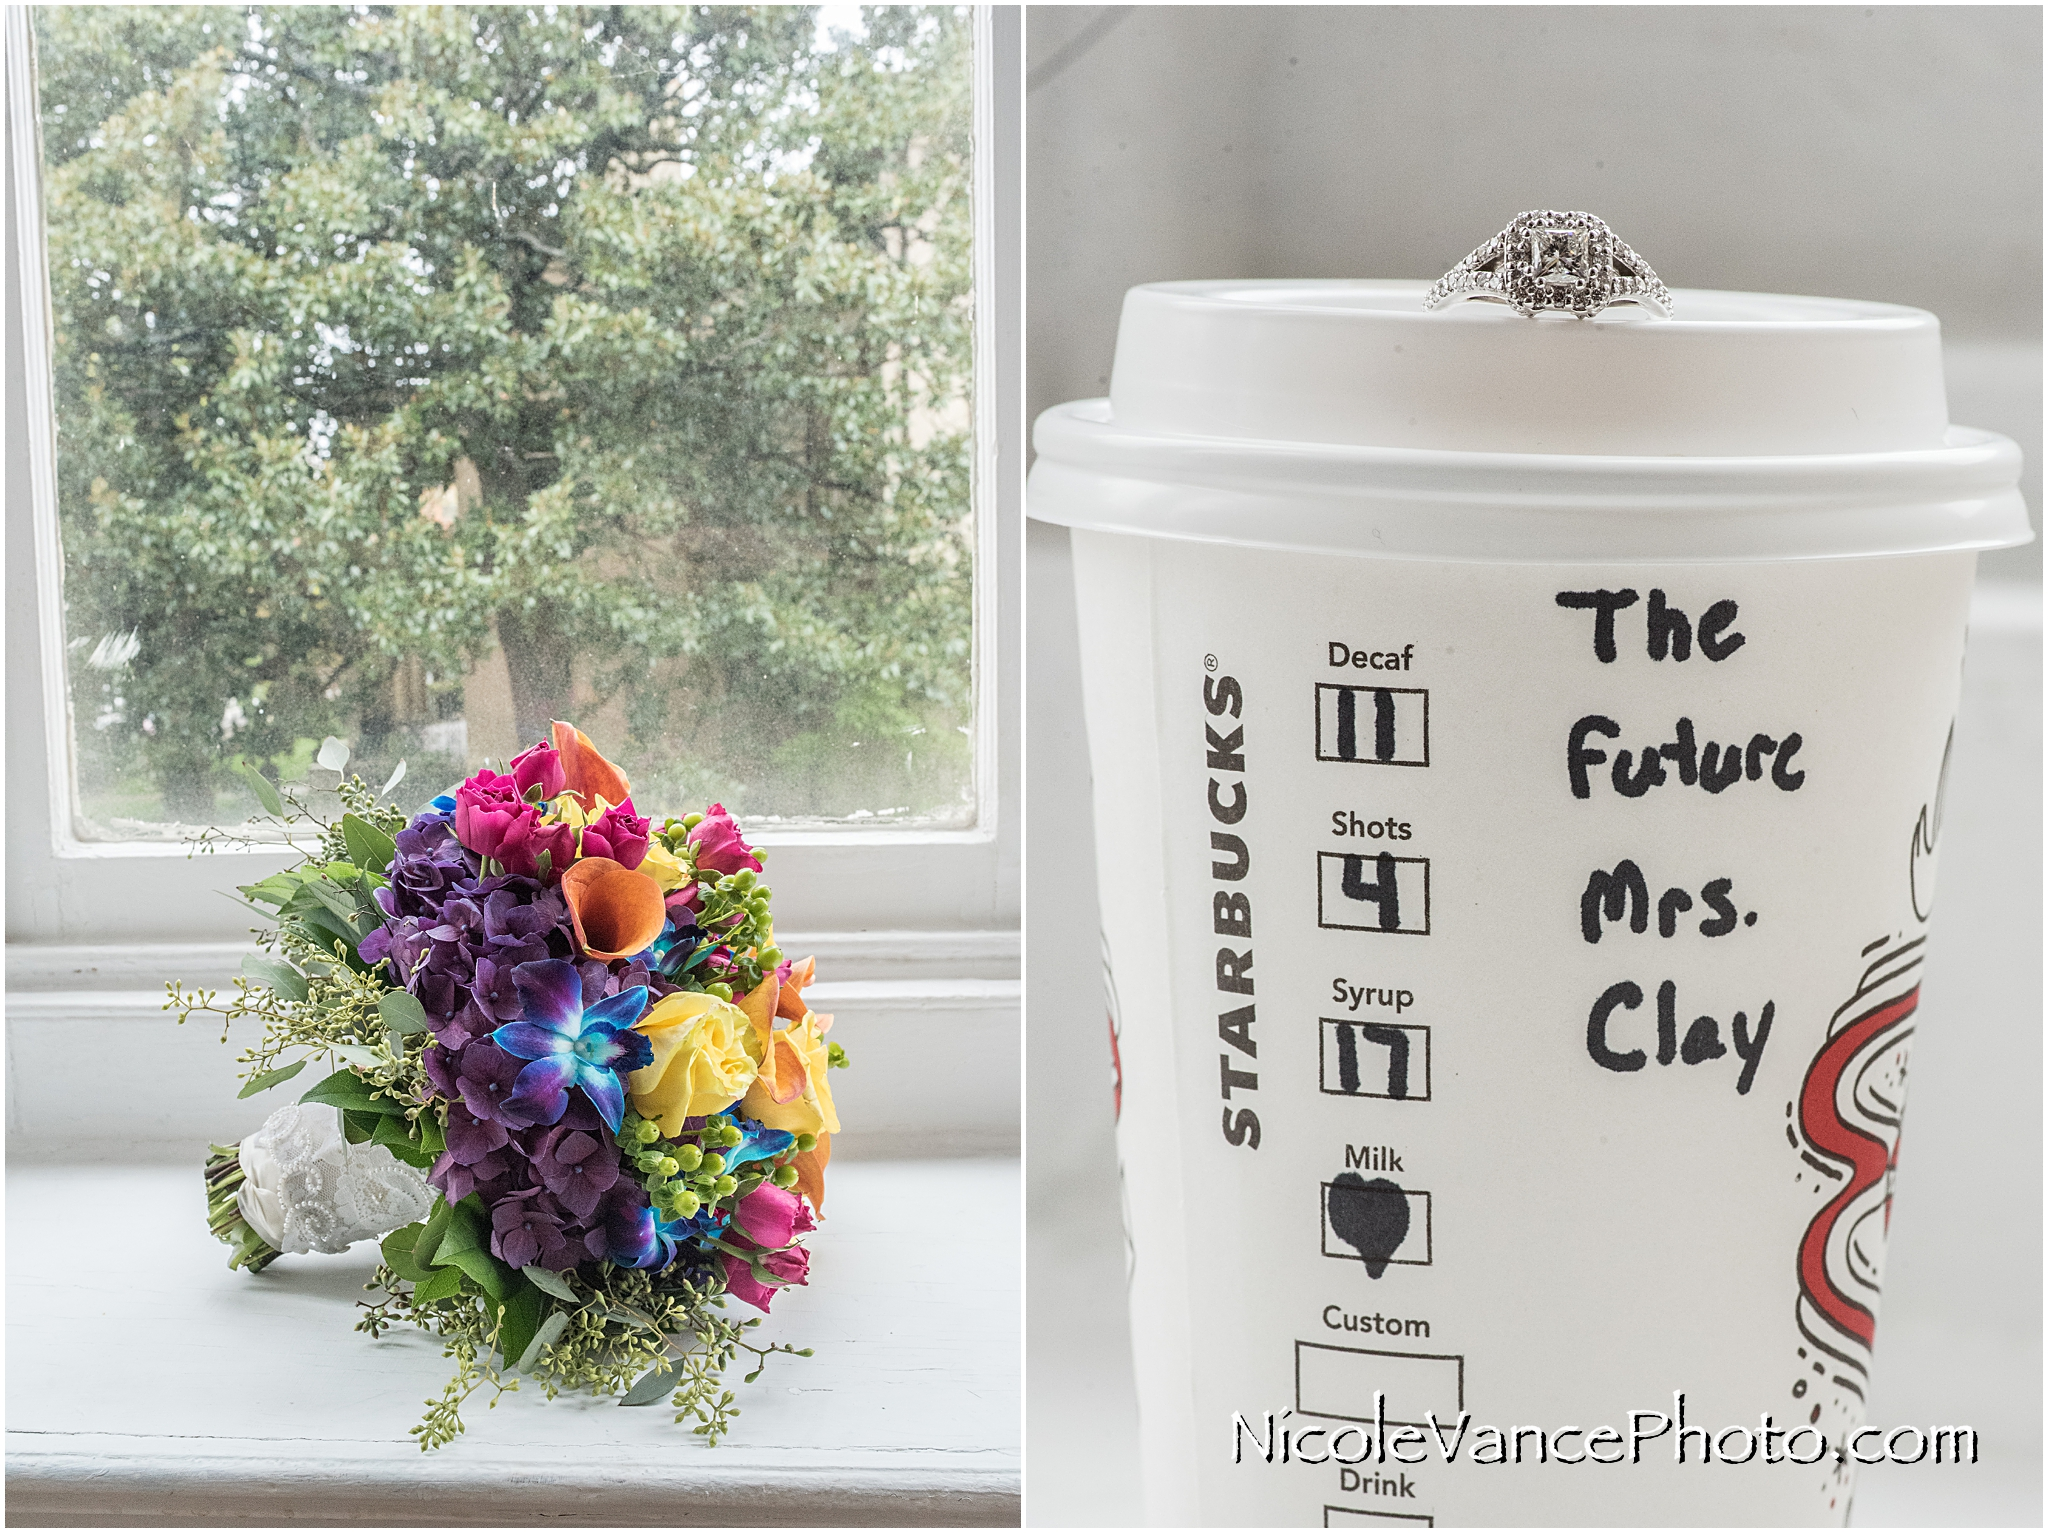 WE love this bright floral bouquet from Flowers Make Scents in Richmond VA. Isn't her starbucks cup the cutest?